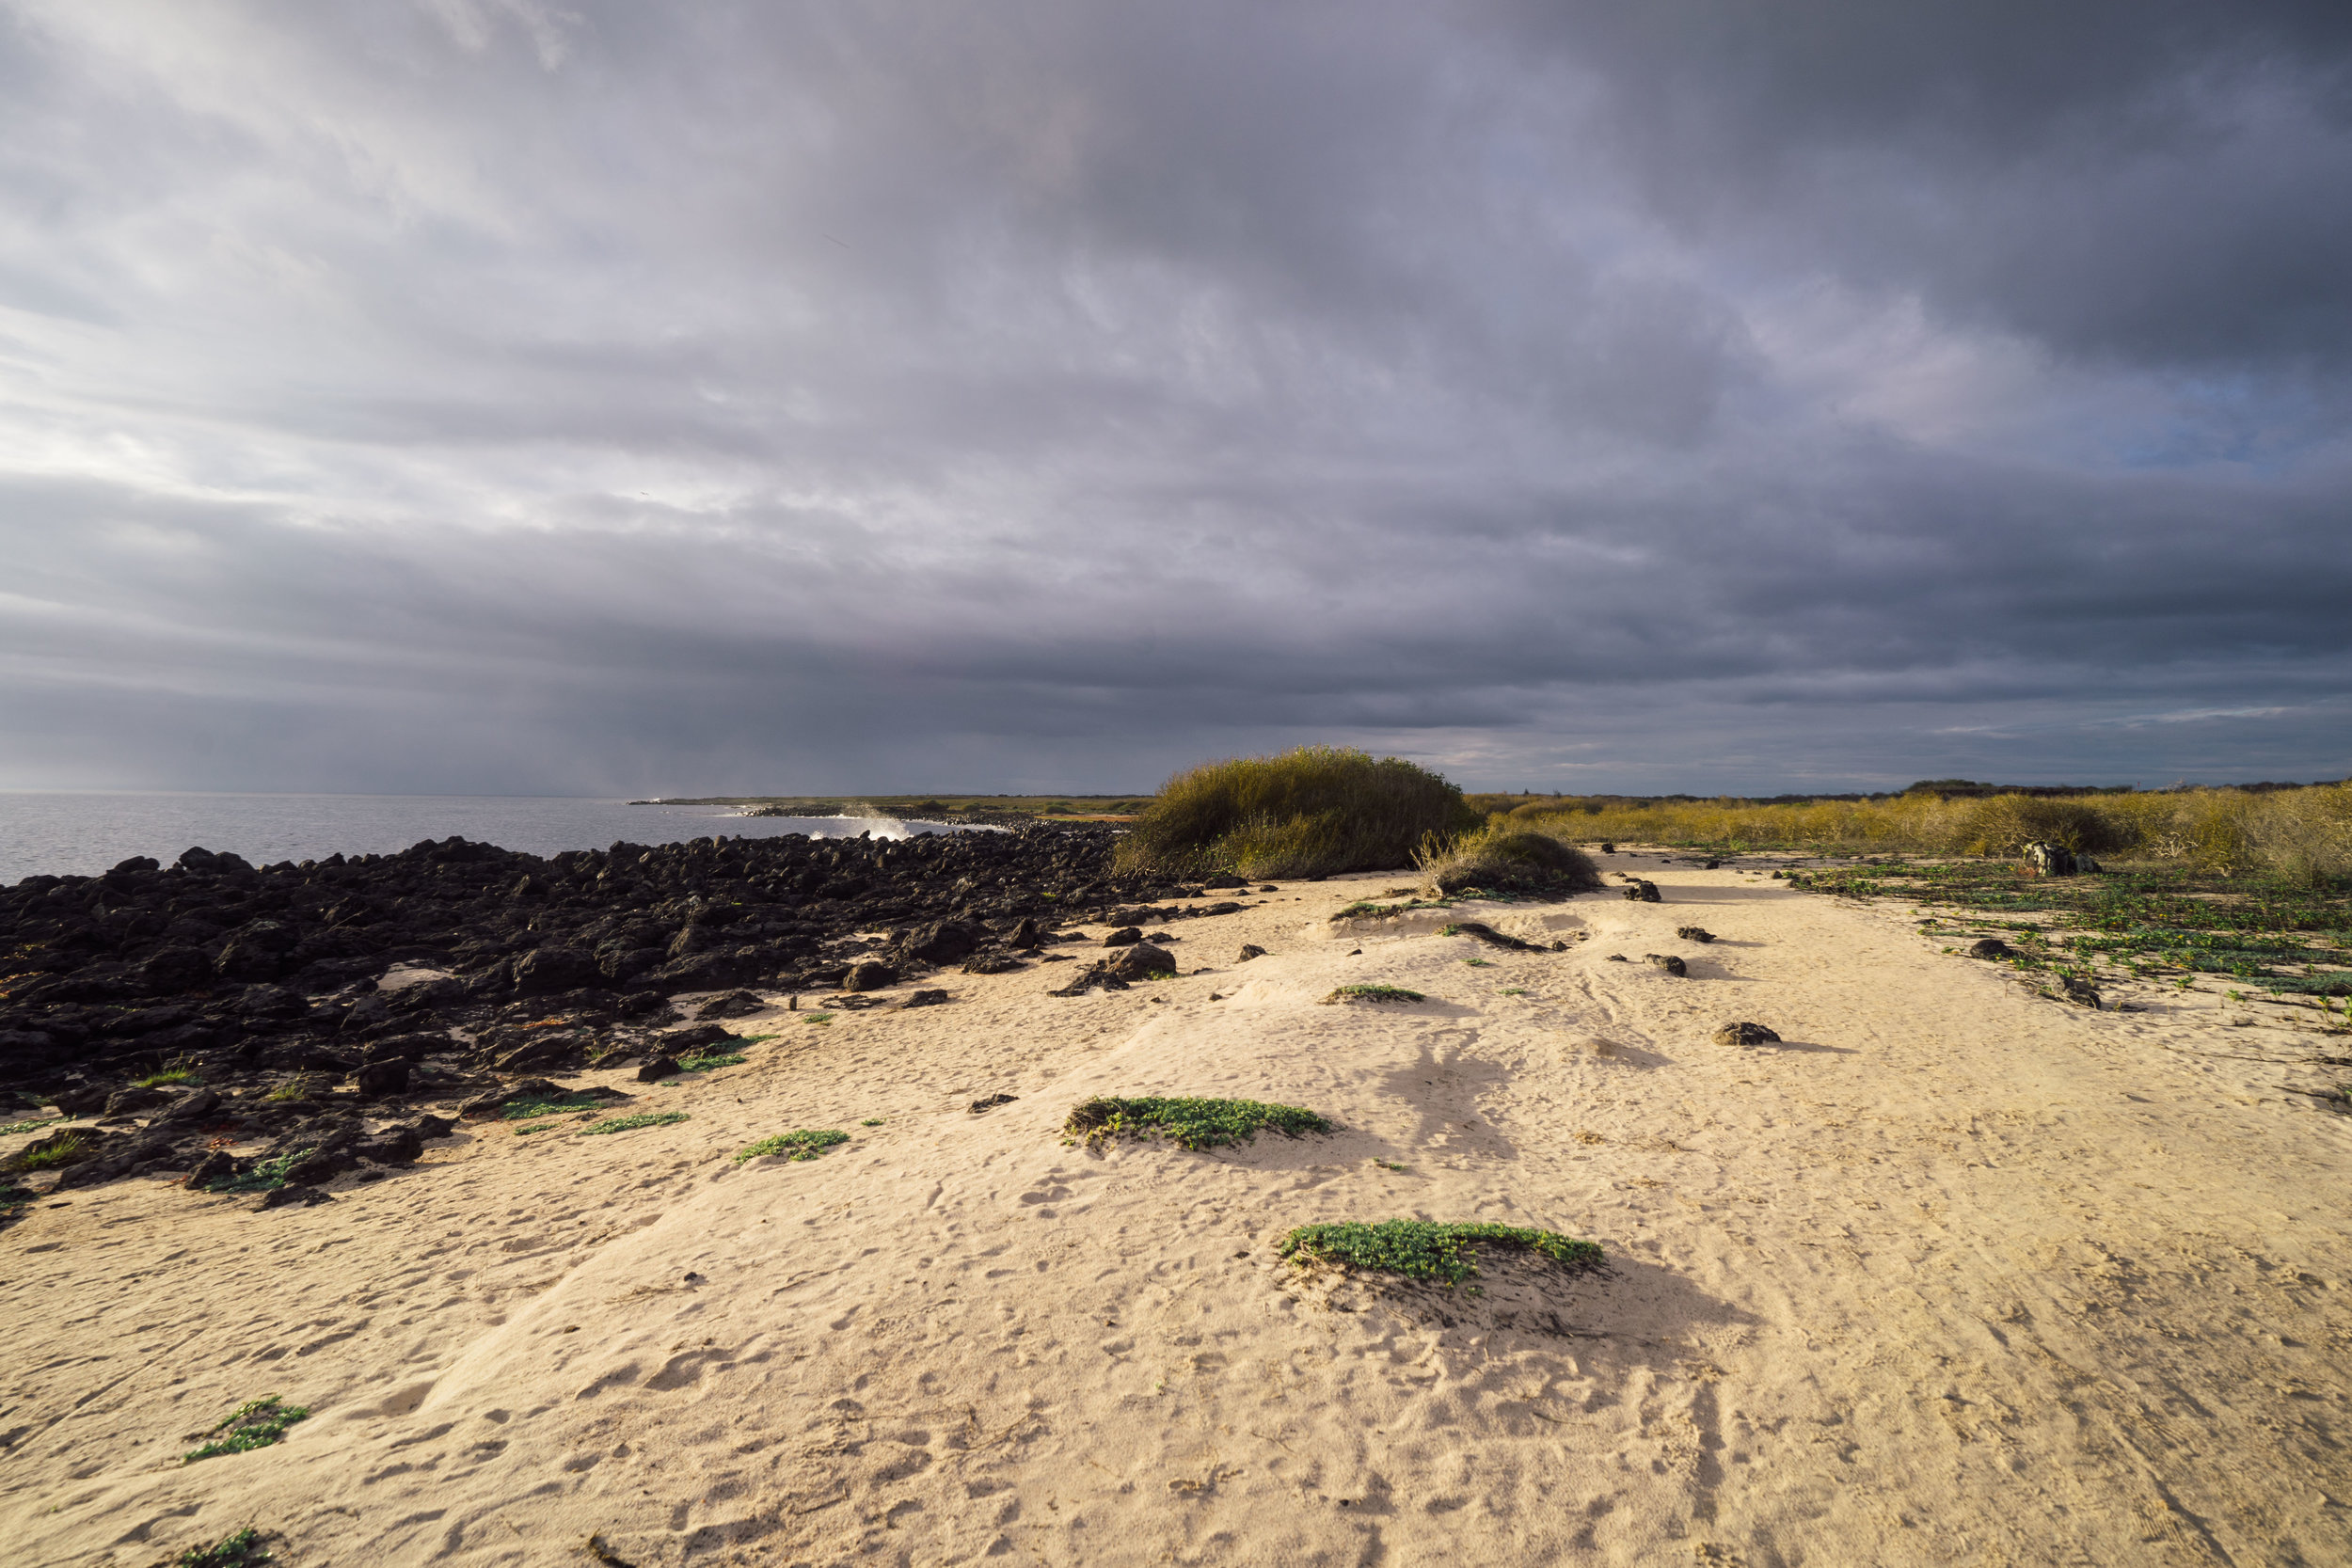 - Entering the beach of La Lobería in the beautiful sunset light, where we would soon encounter a good-size colony of Galápagos sea lions displaying their courtship behavior, territorial quarrels, and amazing acrobatics in the waves.